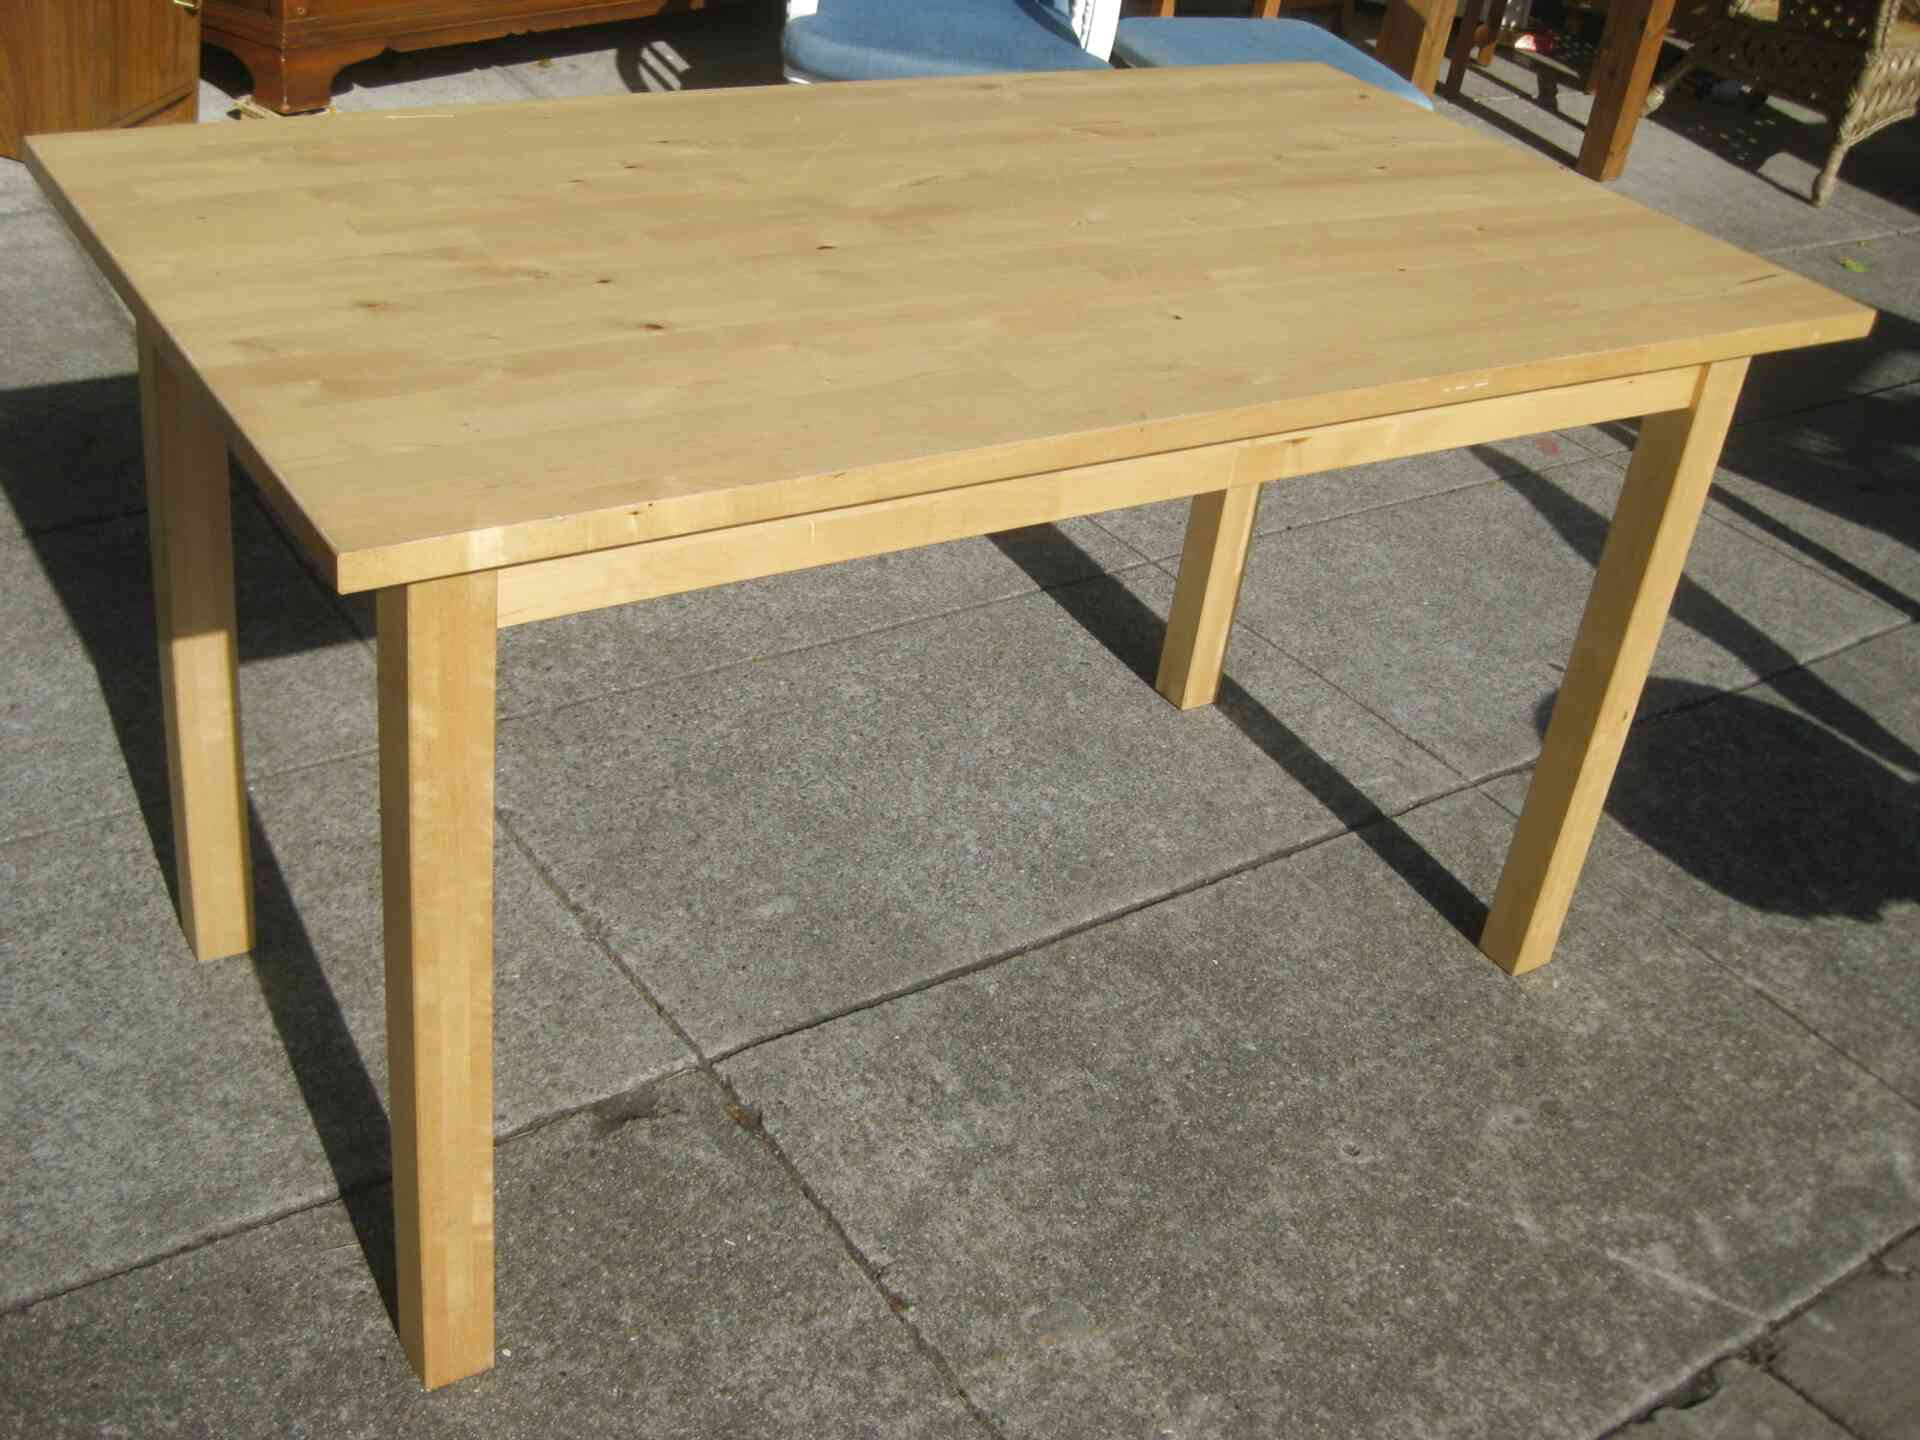 Table Norden Ikea D Occasion Plus Que 4 à 75